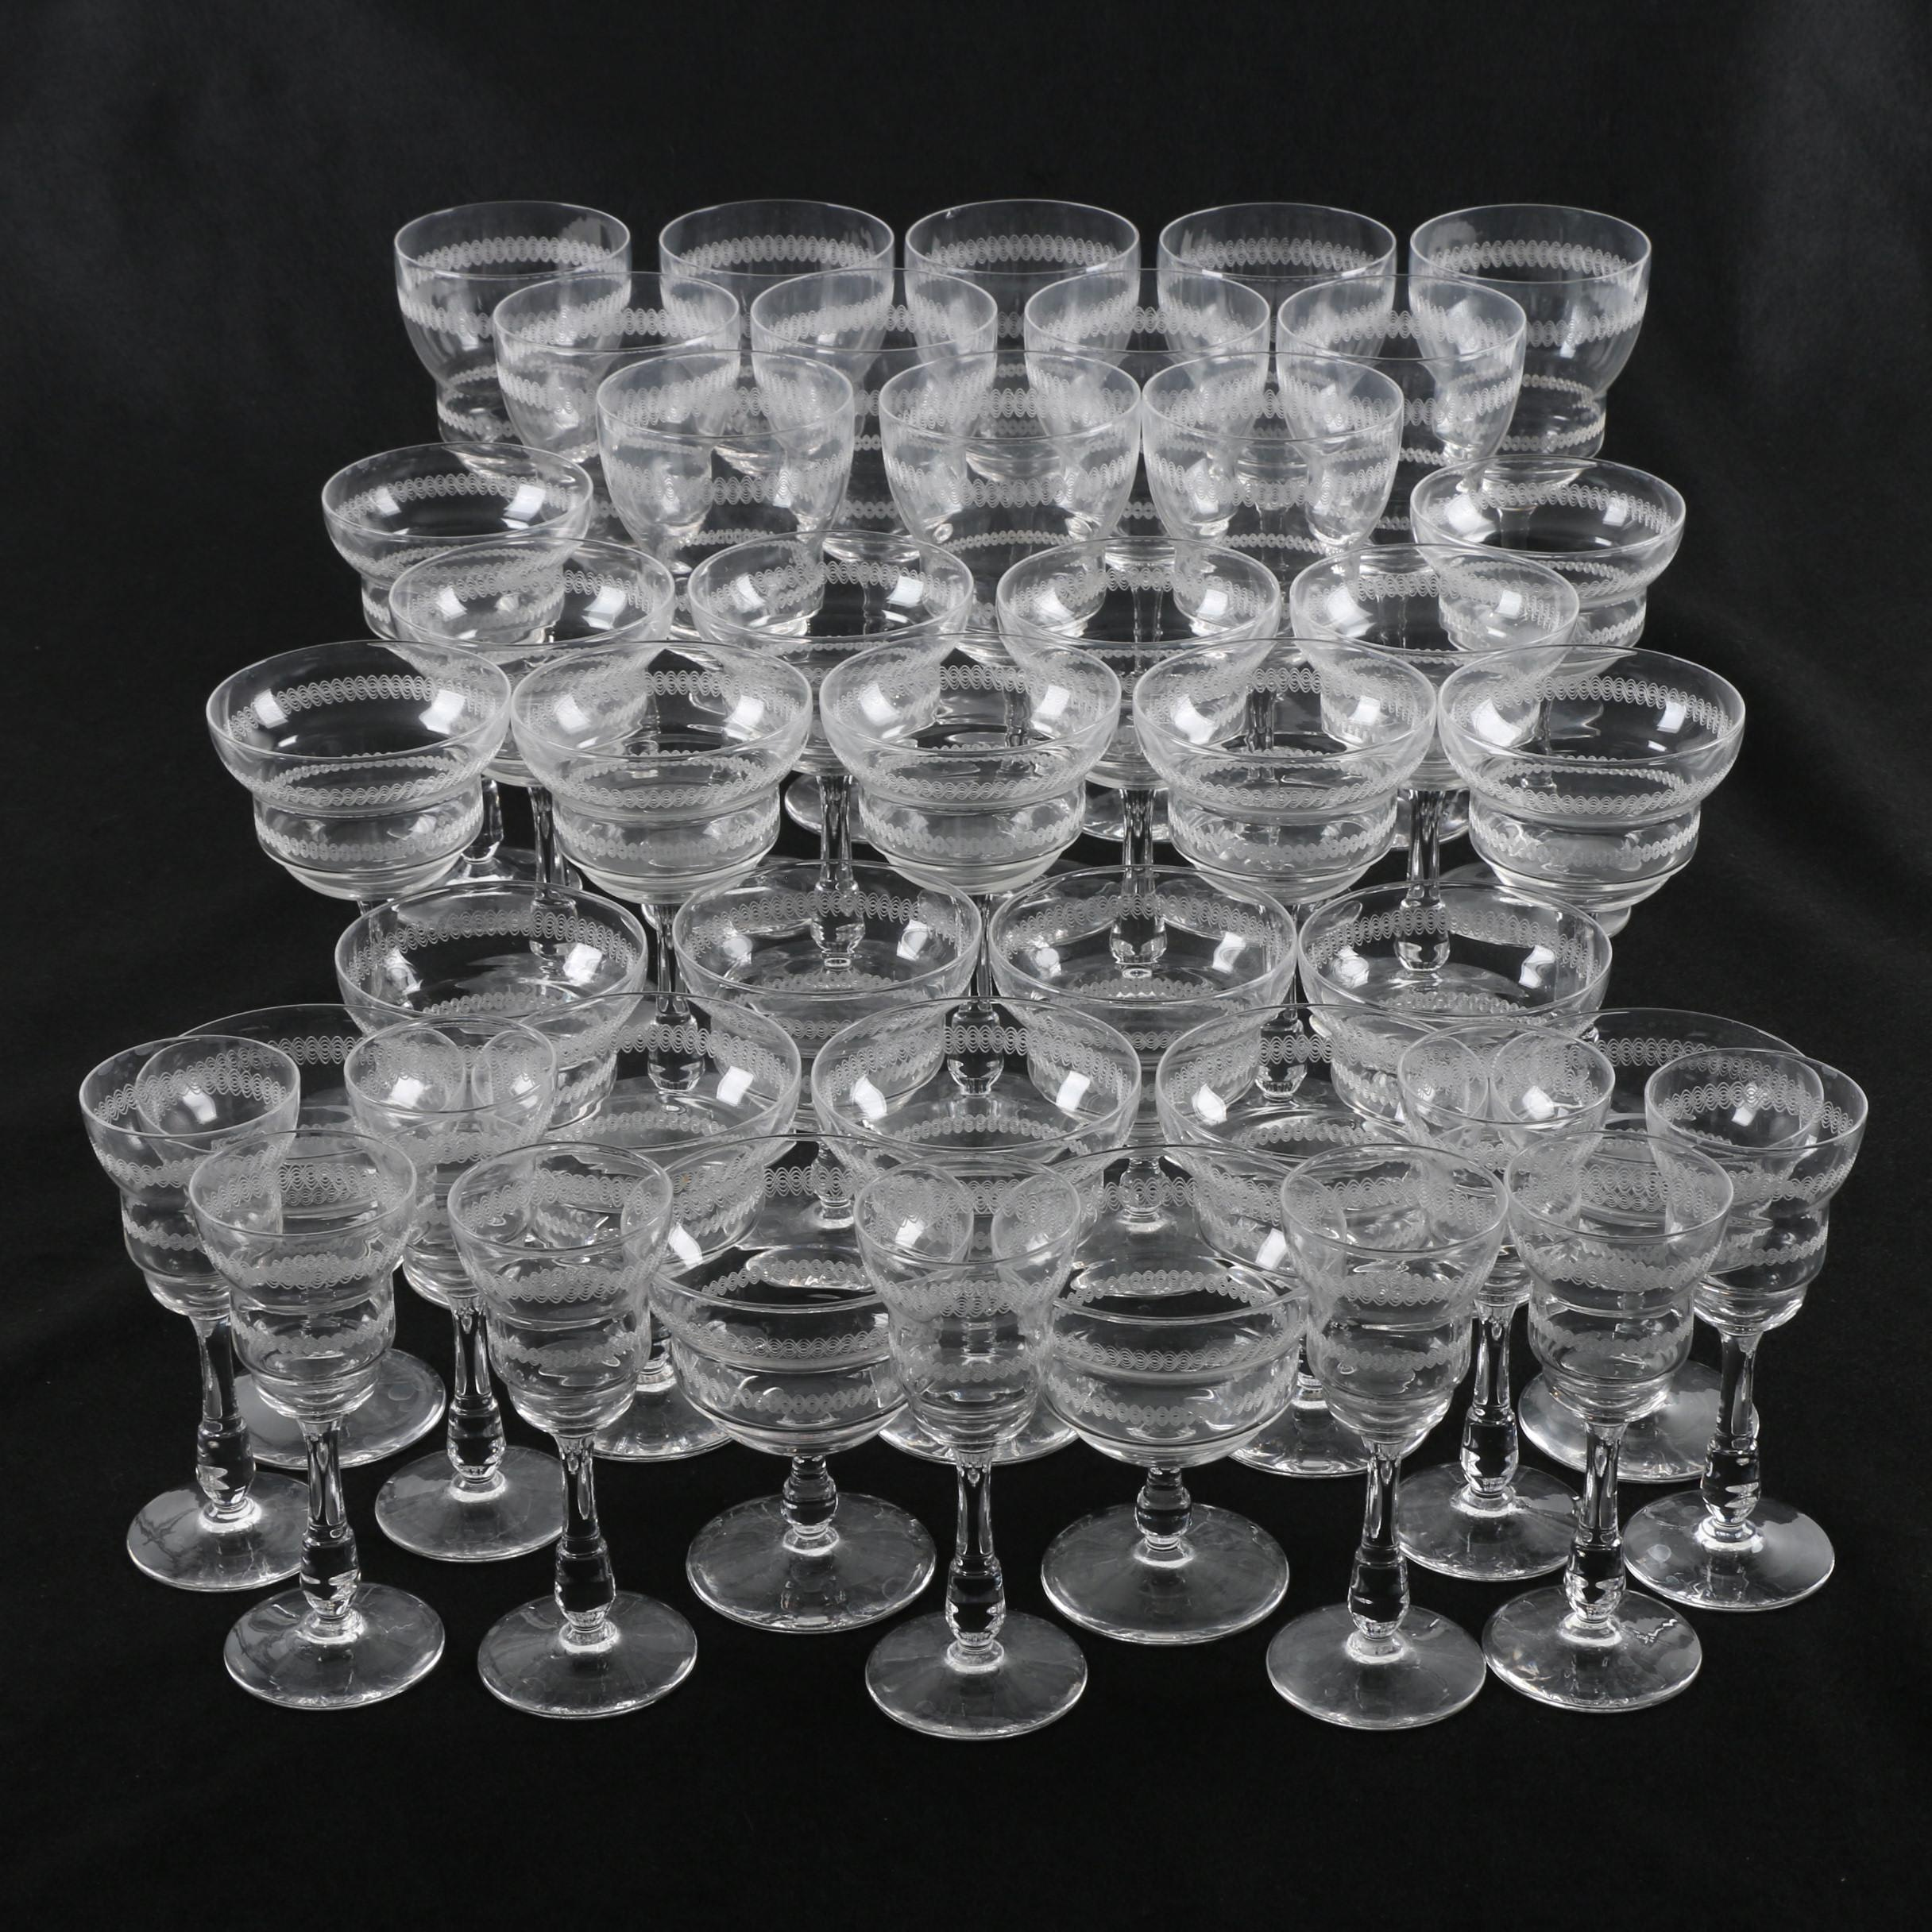 Vintage Needle Etched Stemware with Red and White Wine Glasses and Others